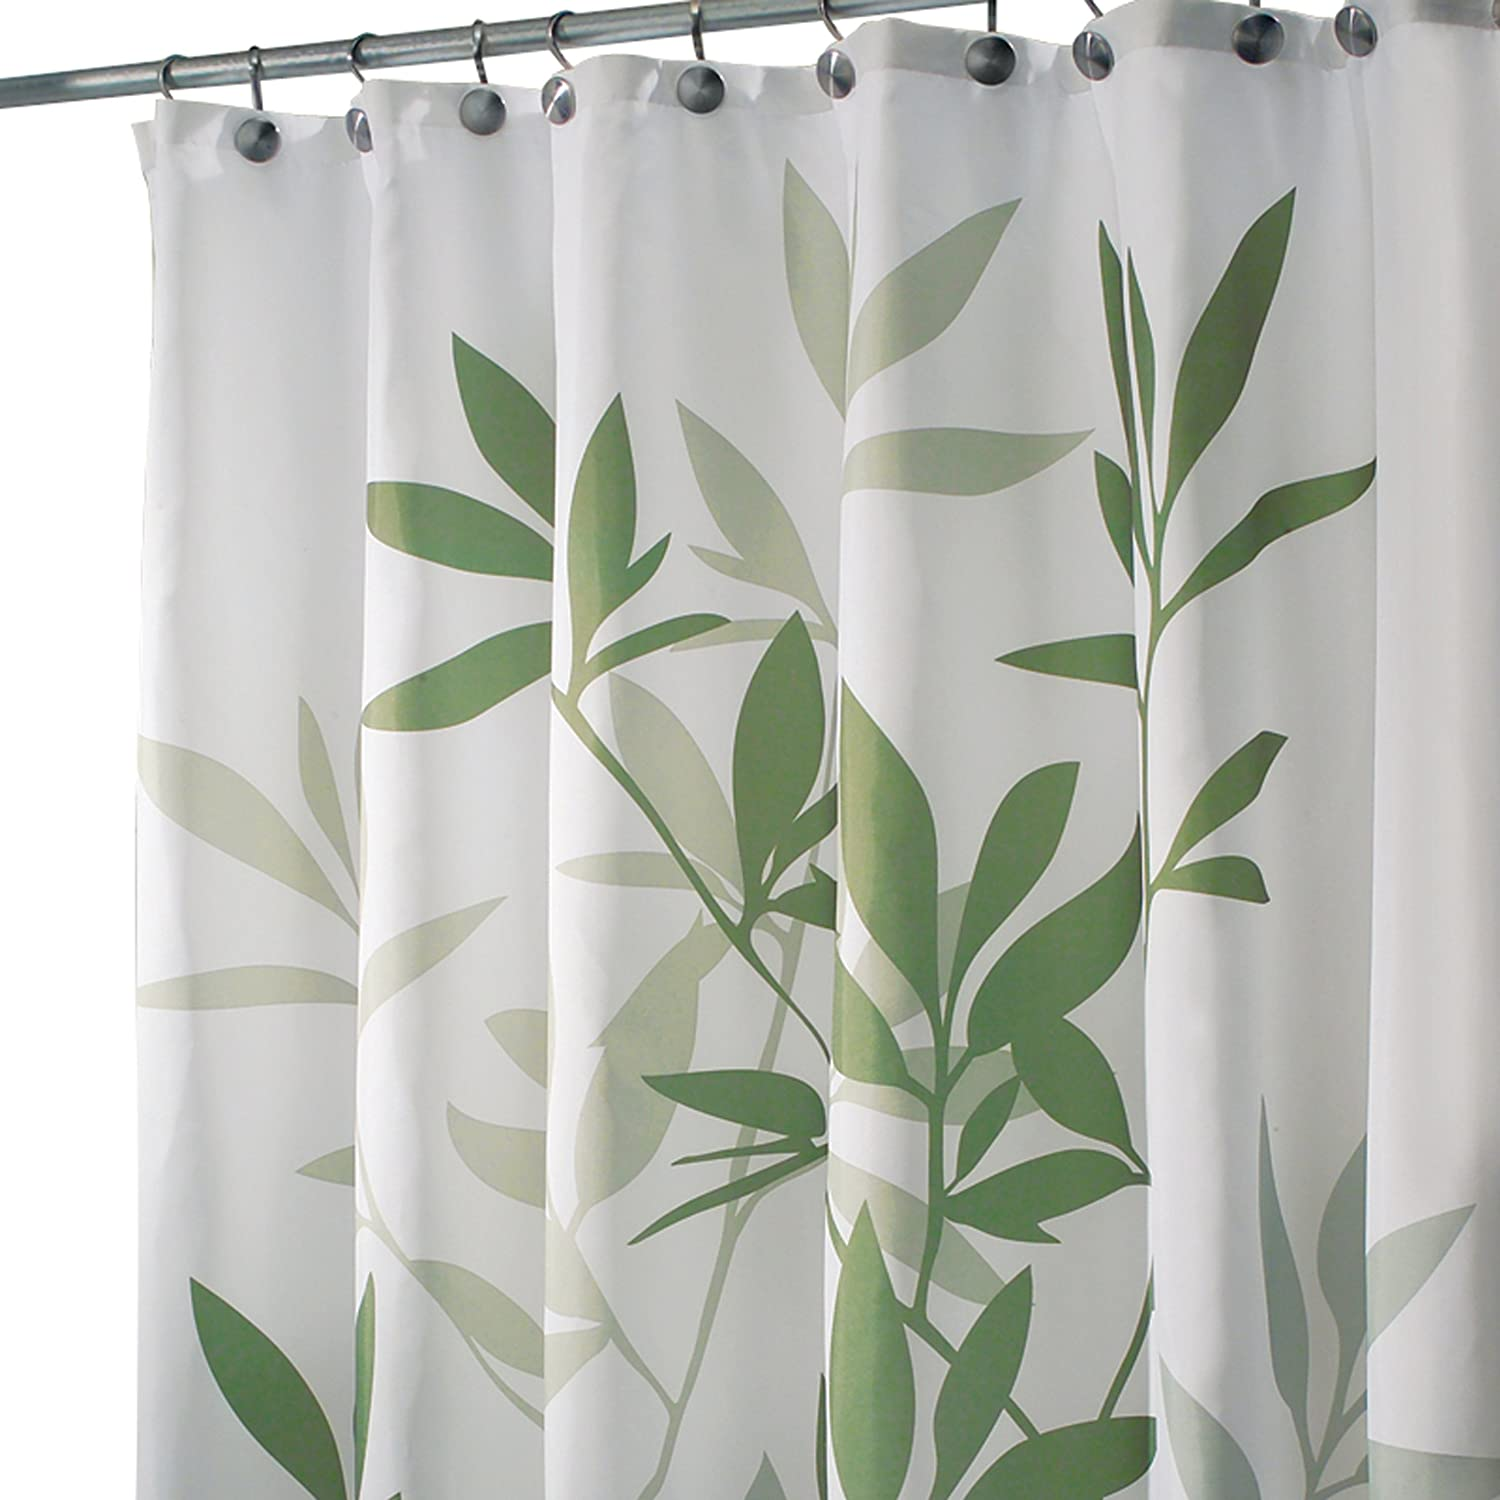 84 Inch Long Fabric Shower Curtains Sheer Curtain Rods